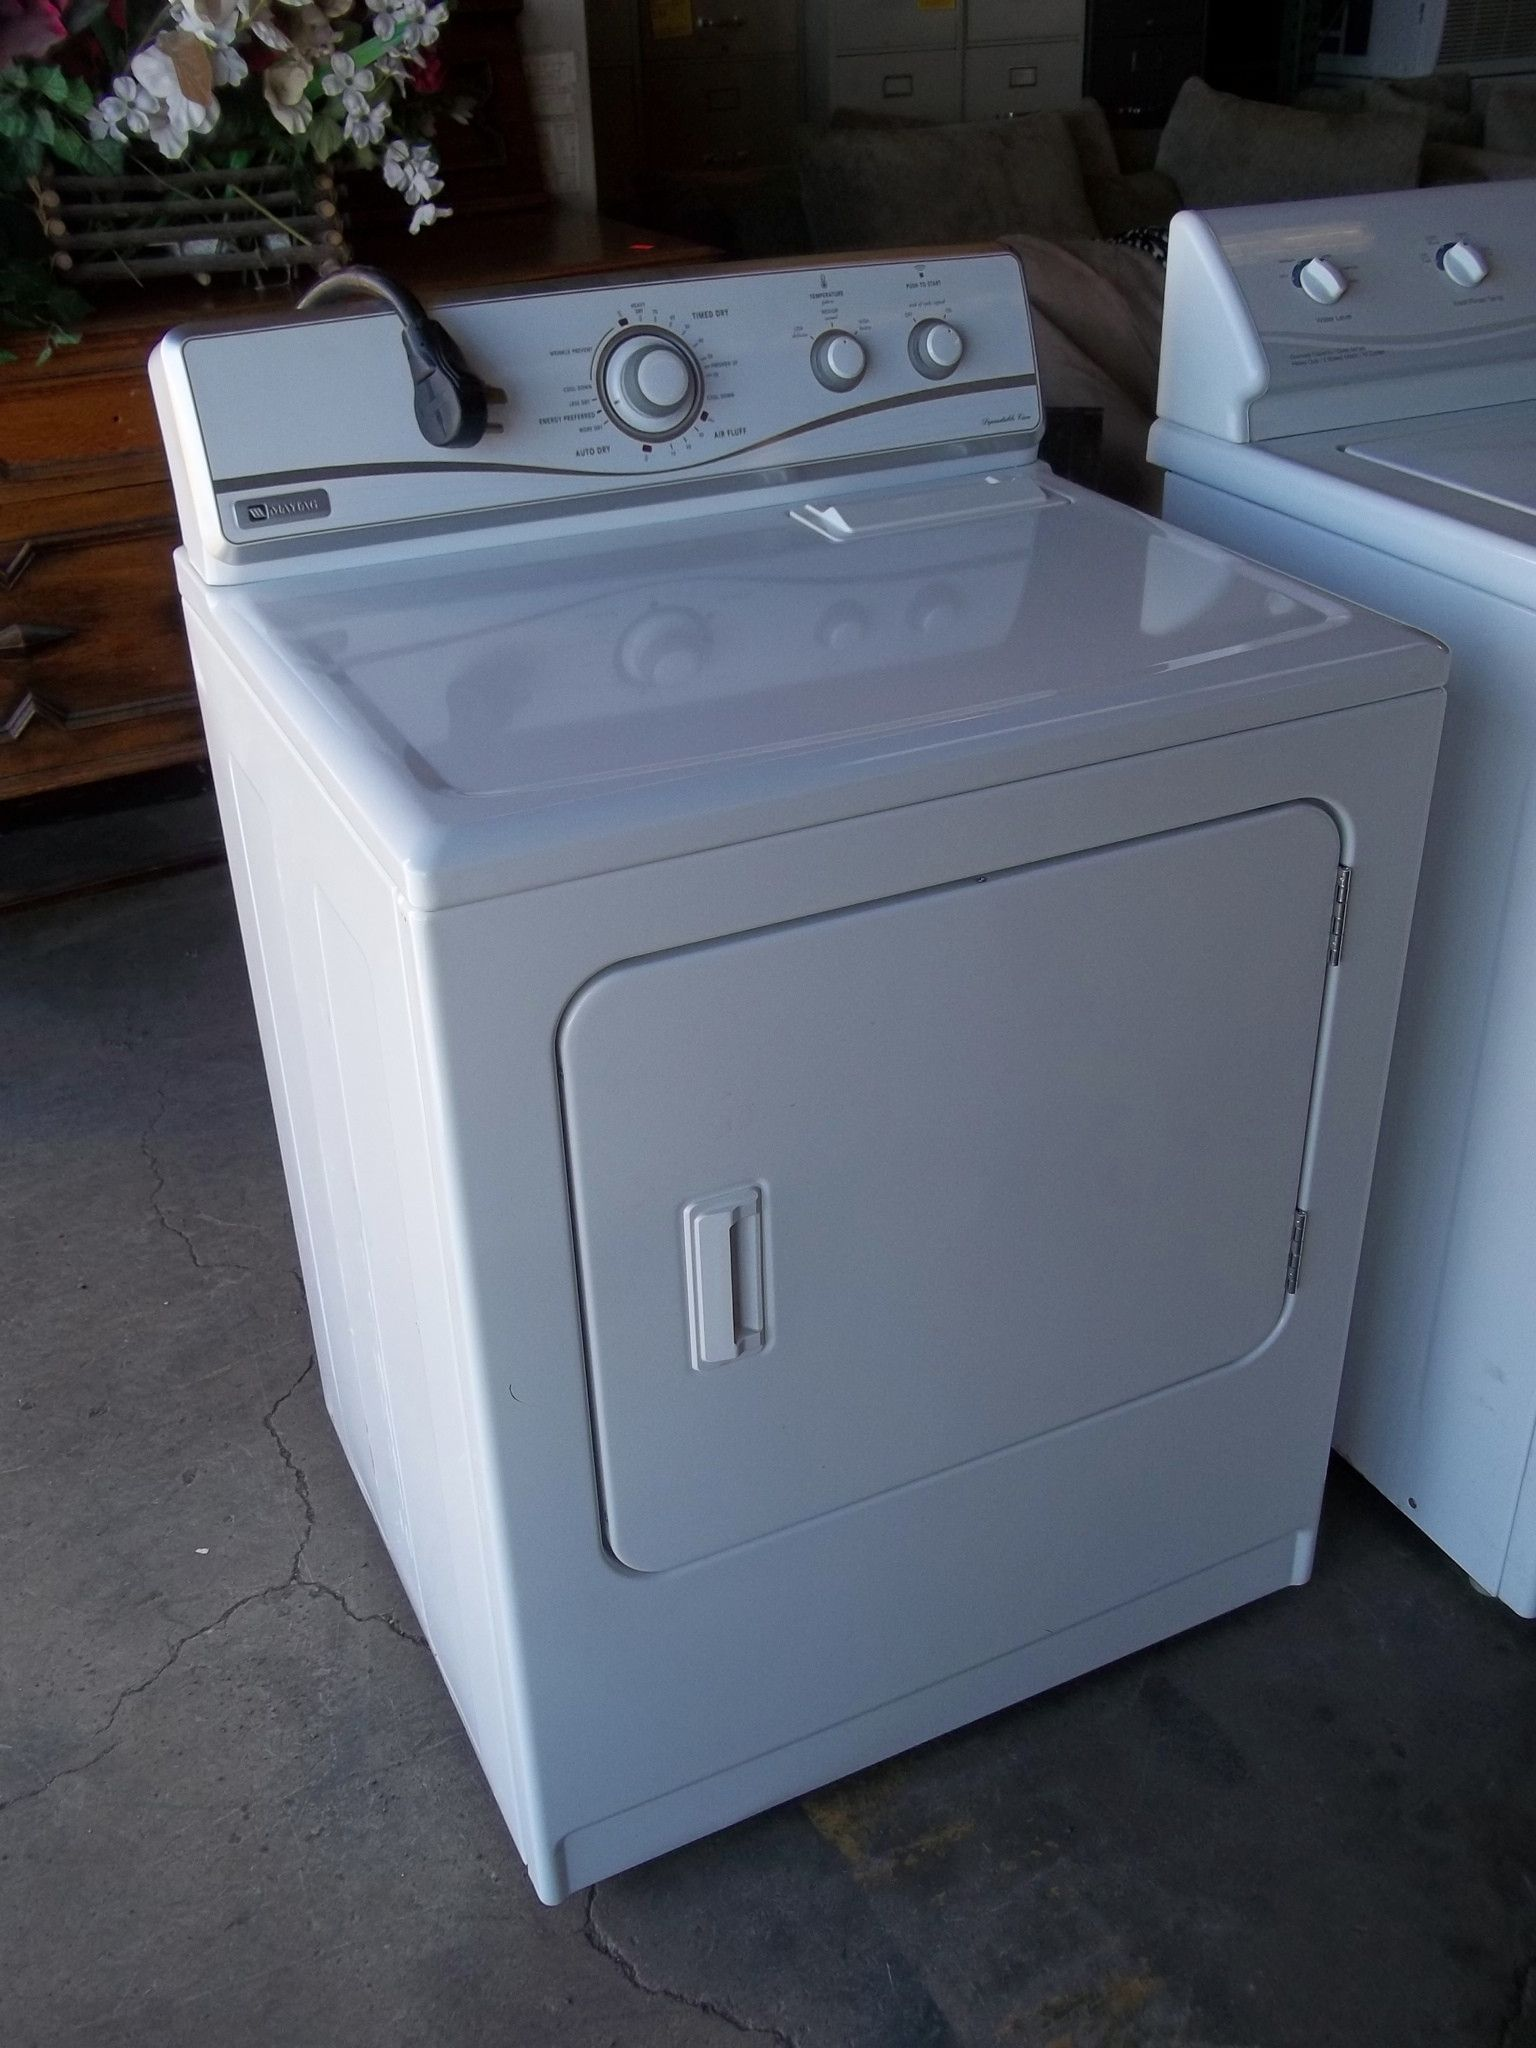 Maytag Electric Dryer 19674 Electric Dryers Washer Dryer Combo